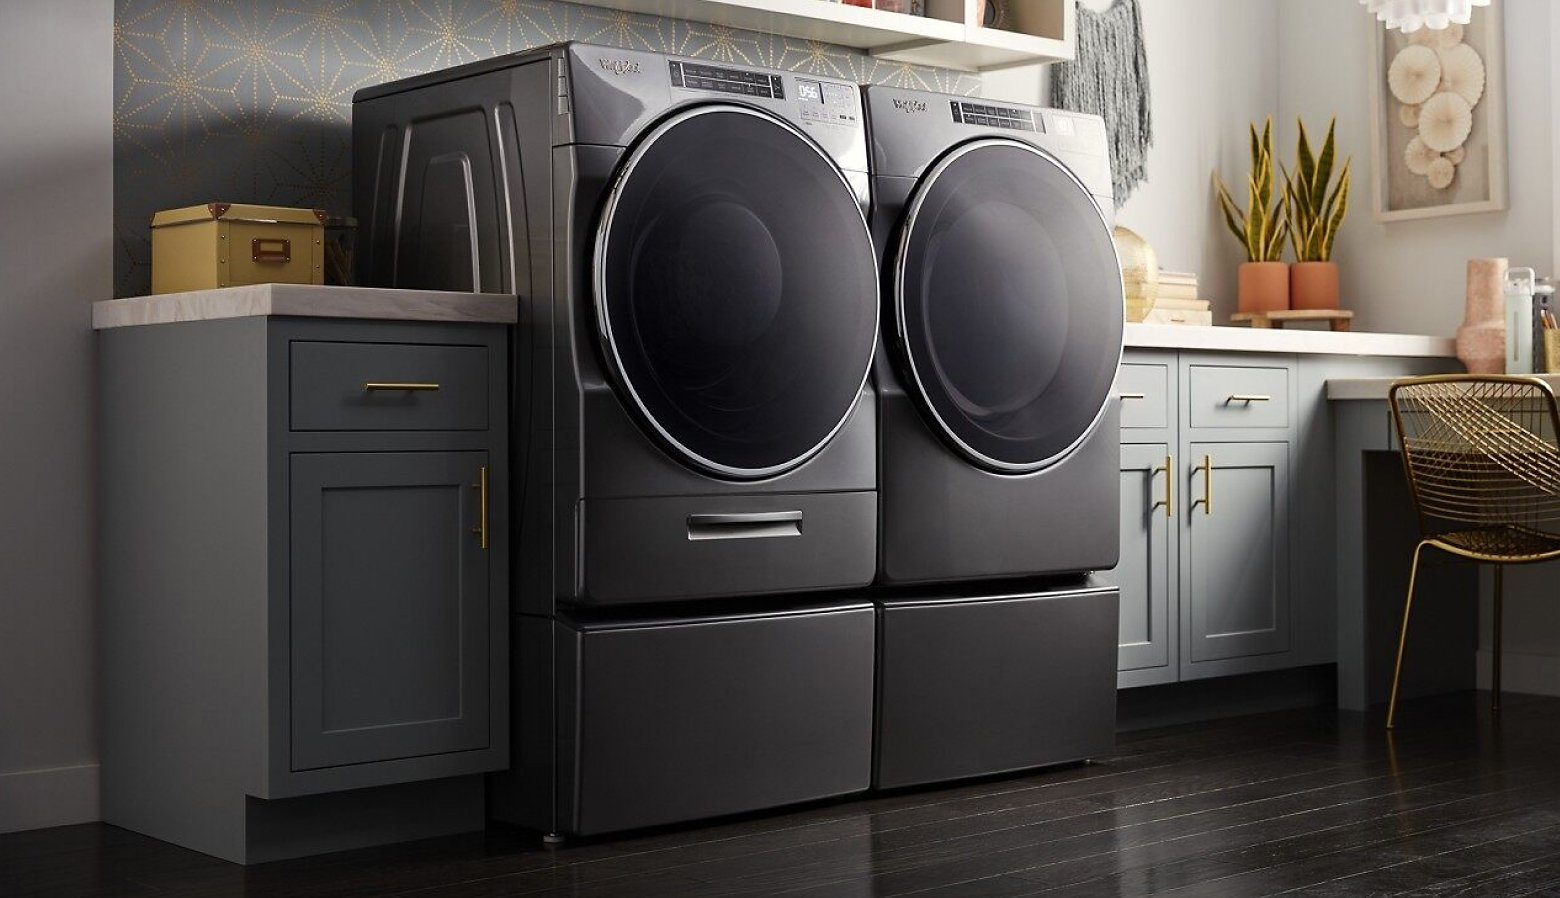 A front load laundry pair in a laundry room